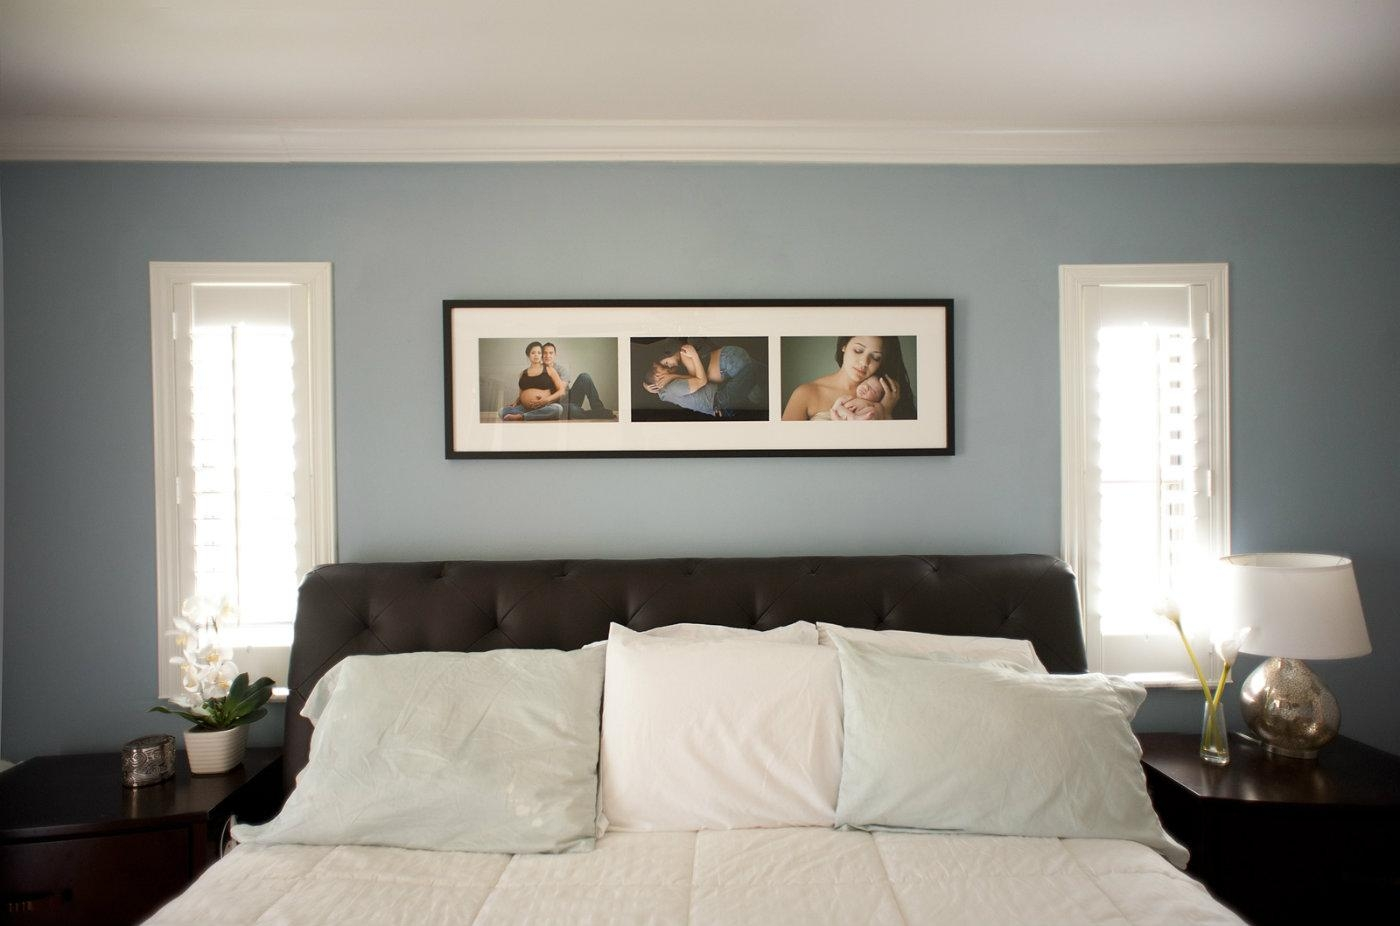 Bedroom framed wall art images for Wall of framed pictures